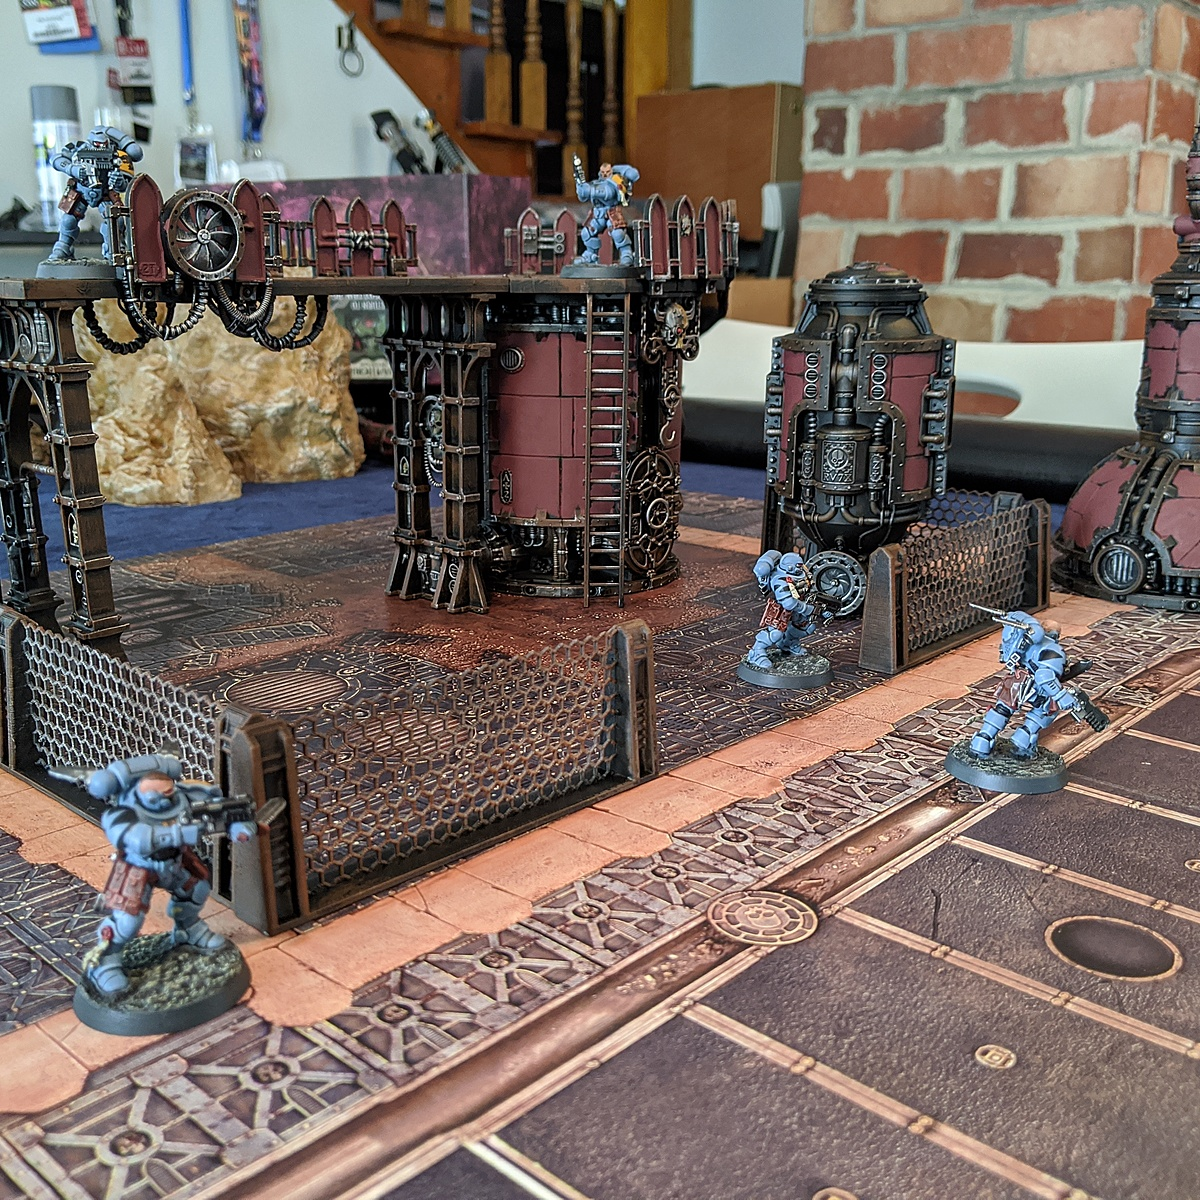 [40K] [Terrain] Industrial Red / Weathered Rust for Sector Mechanicus